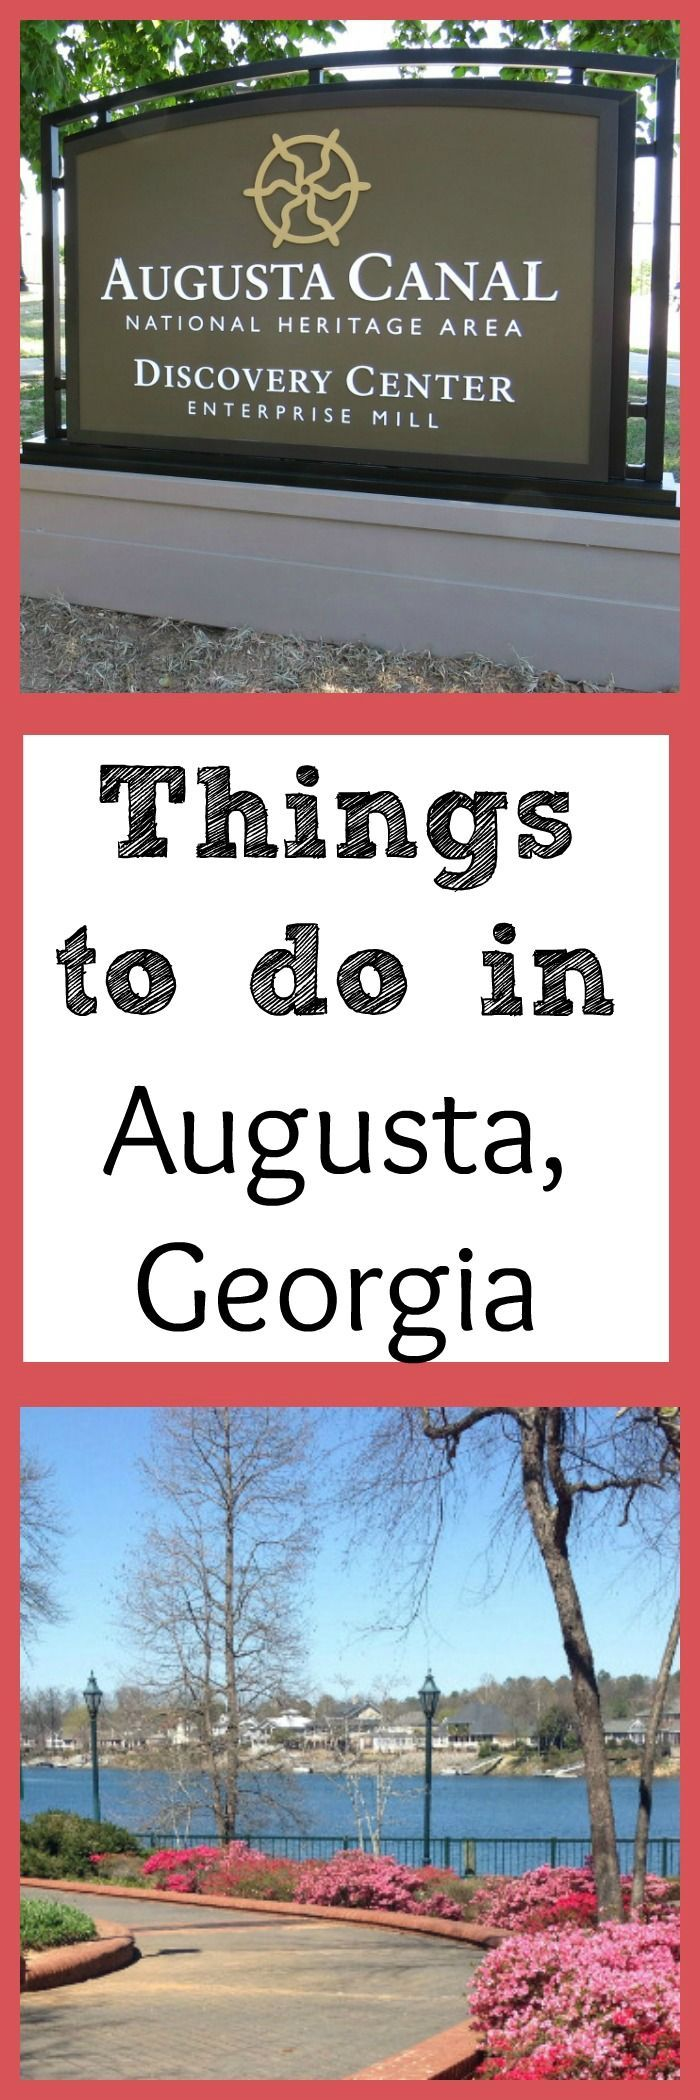 Looking for something fun to do in Augusta? This list is full of fun things to do in things to do in Augusta, Georgia whether you live there or taking a day trip.  via @debitalks